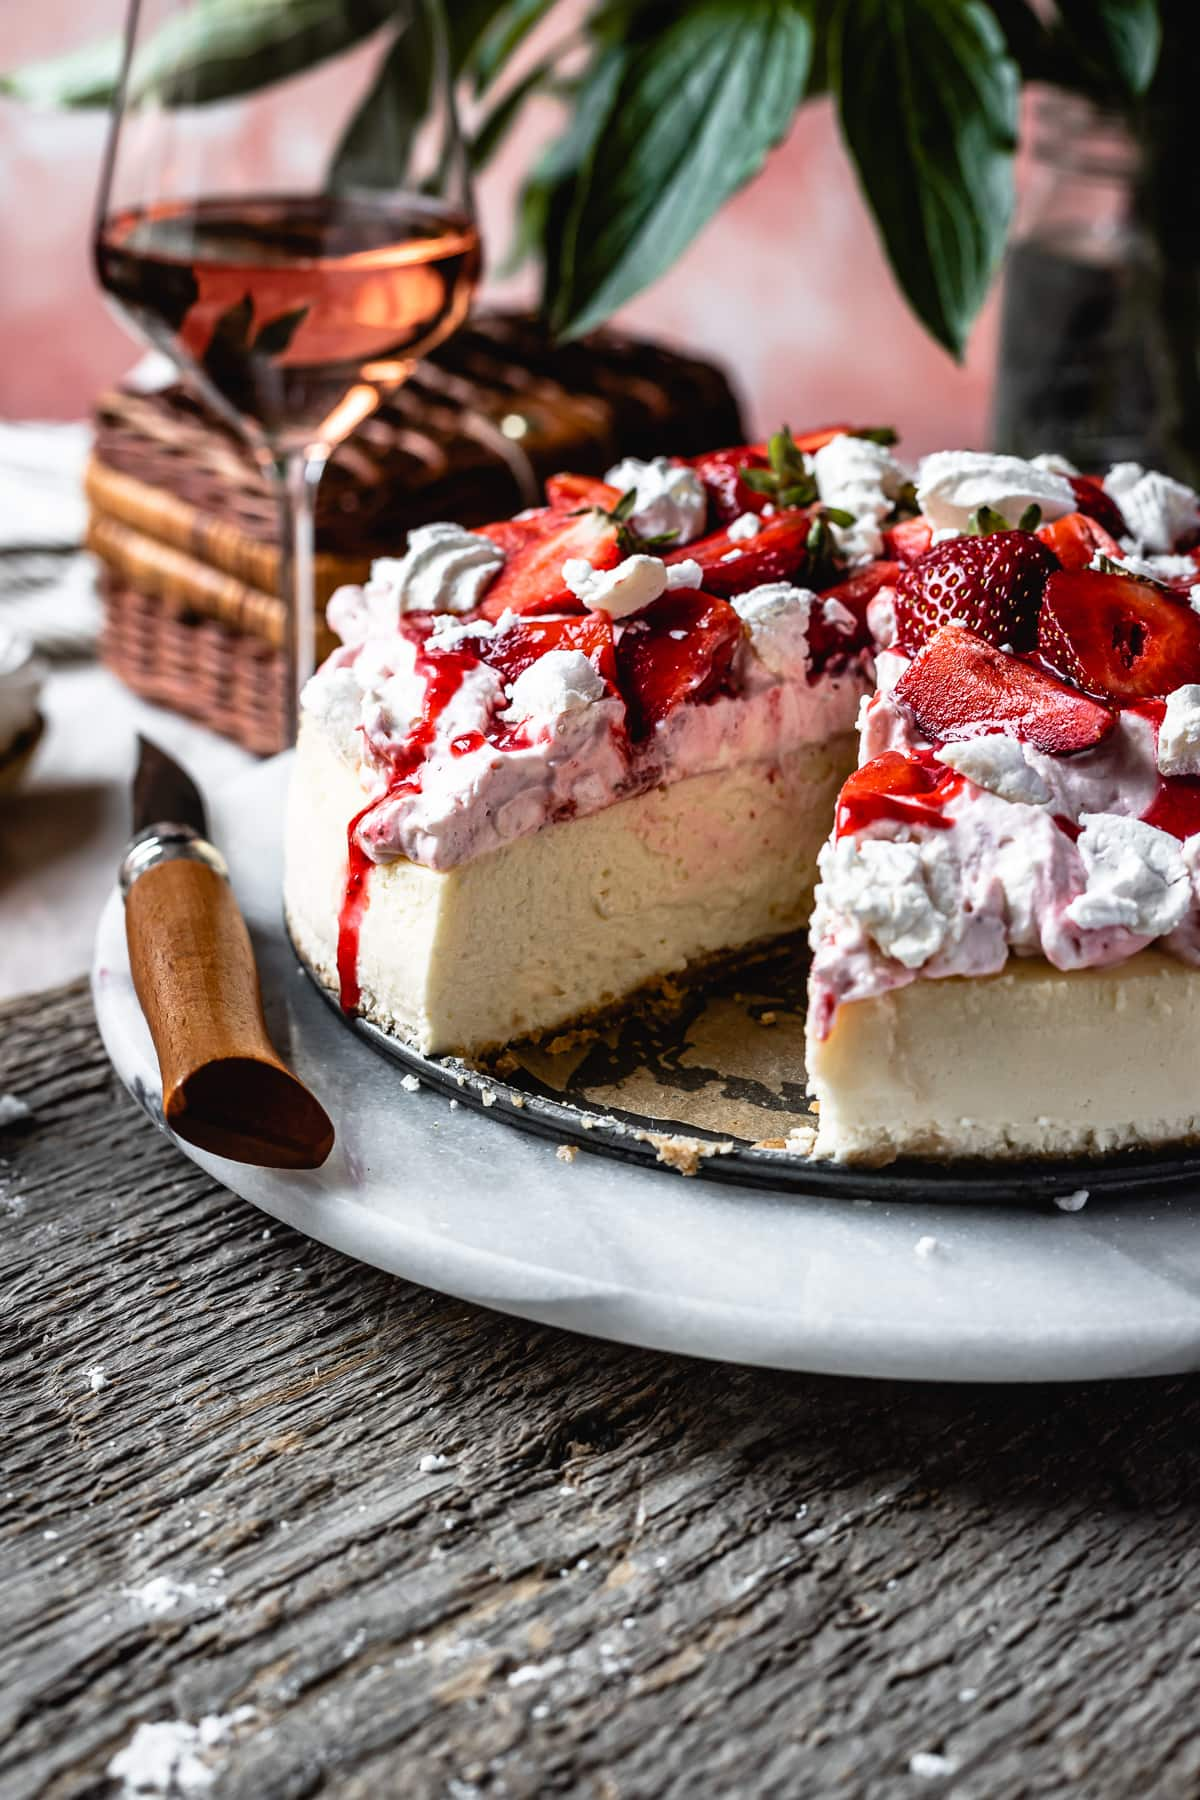 Side view of cheesecake with a slice cut out of it, revealing the creamy interior. The cheesecake is topped with whipped cream, strawberries and meringues.